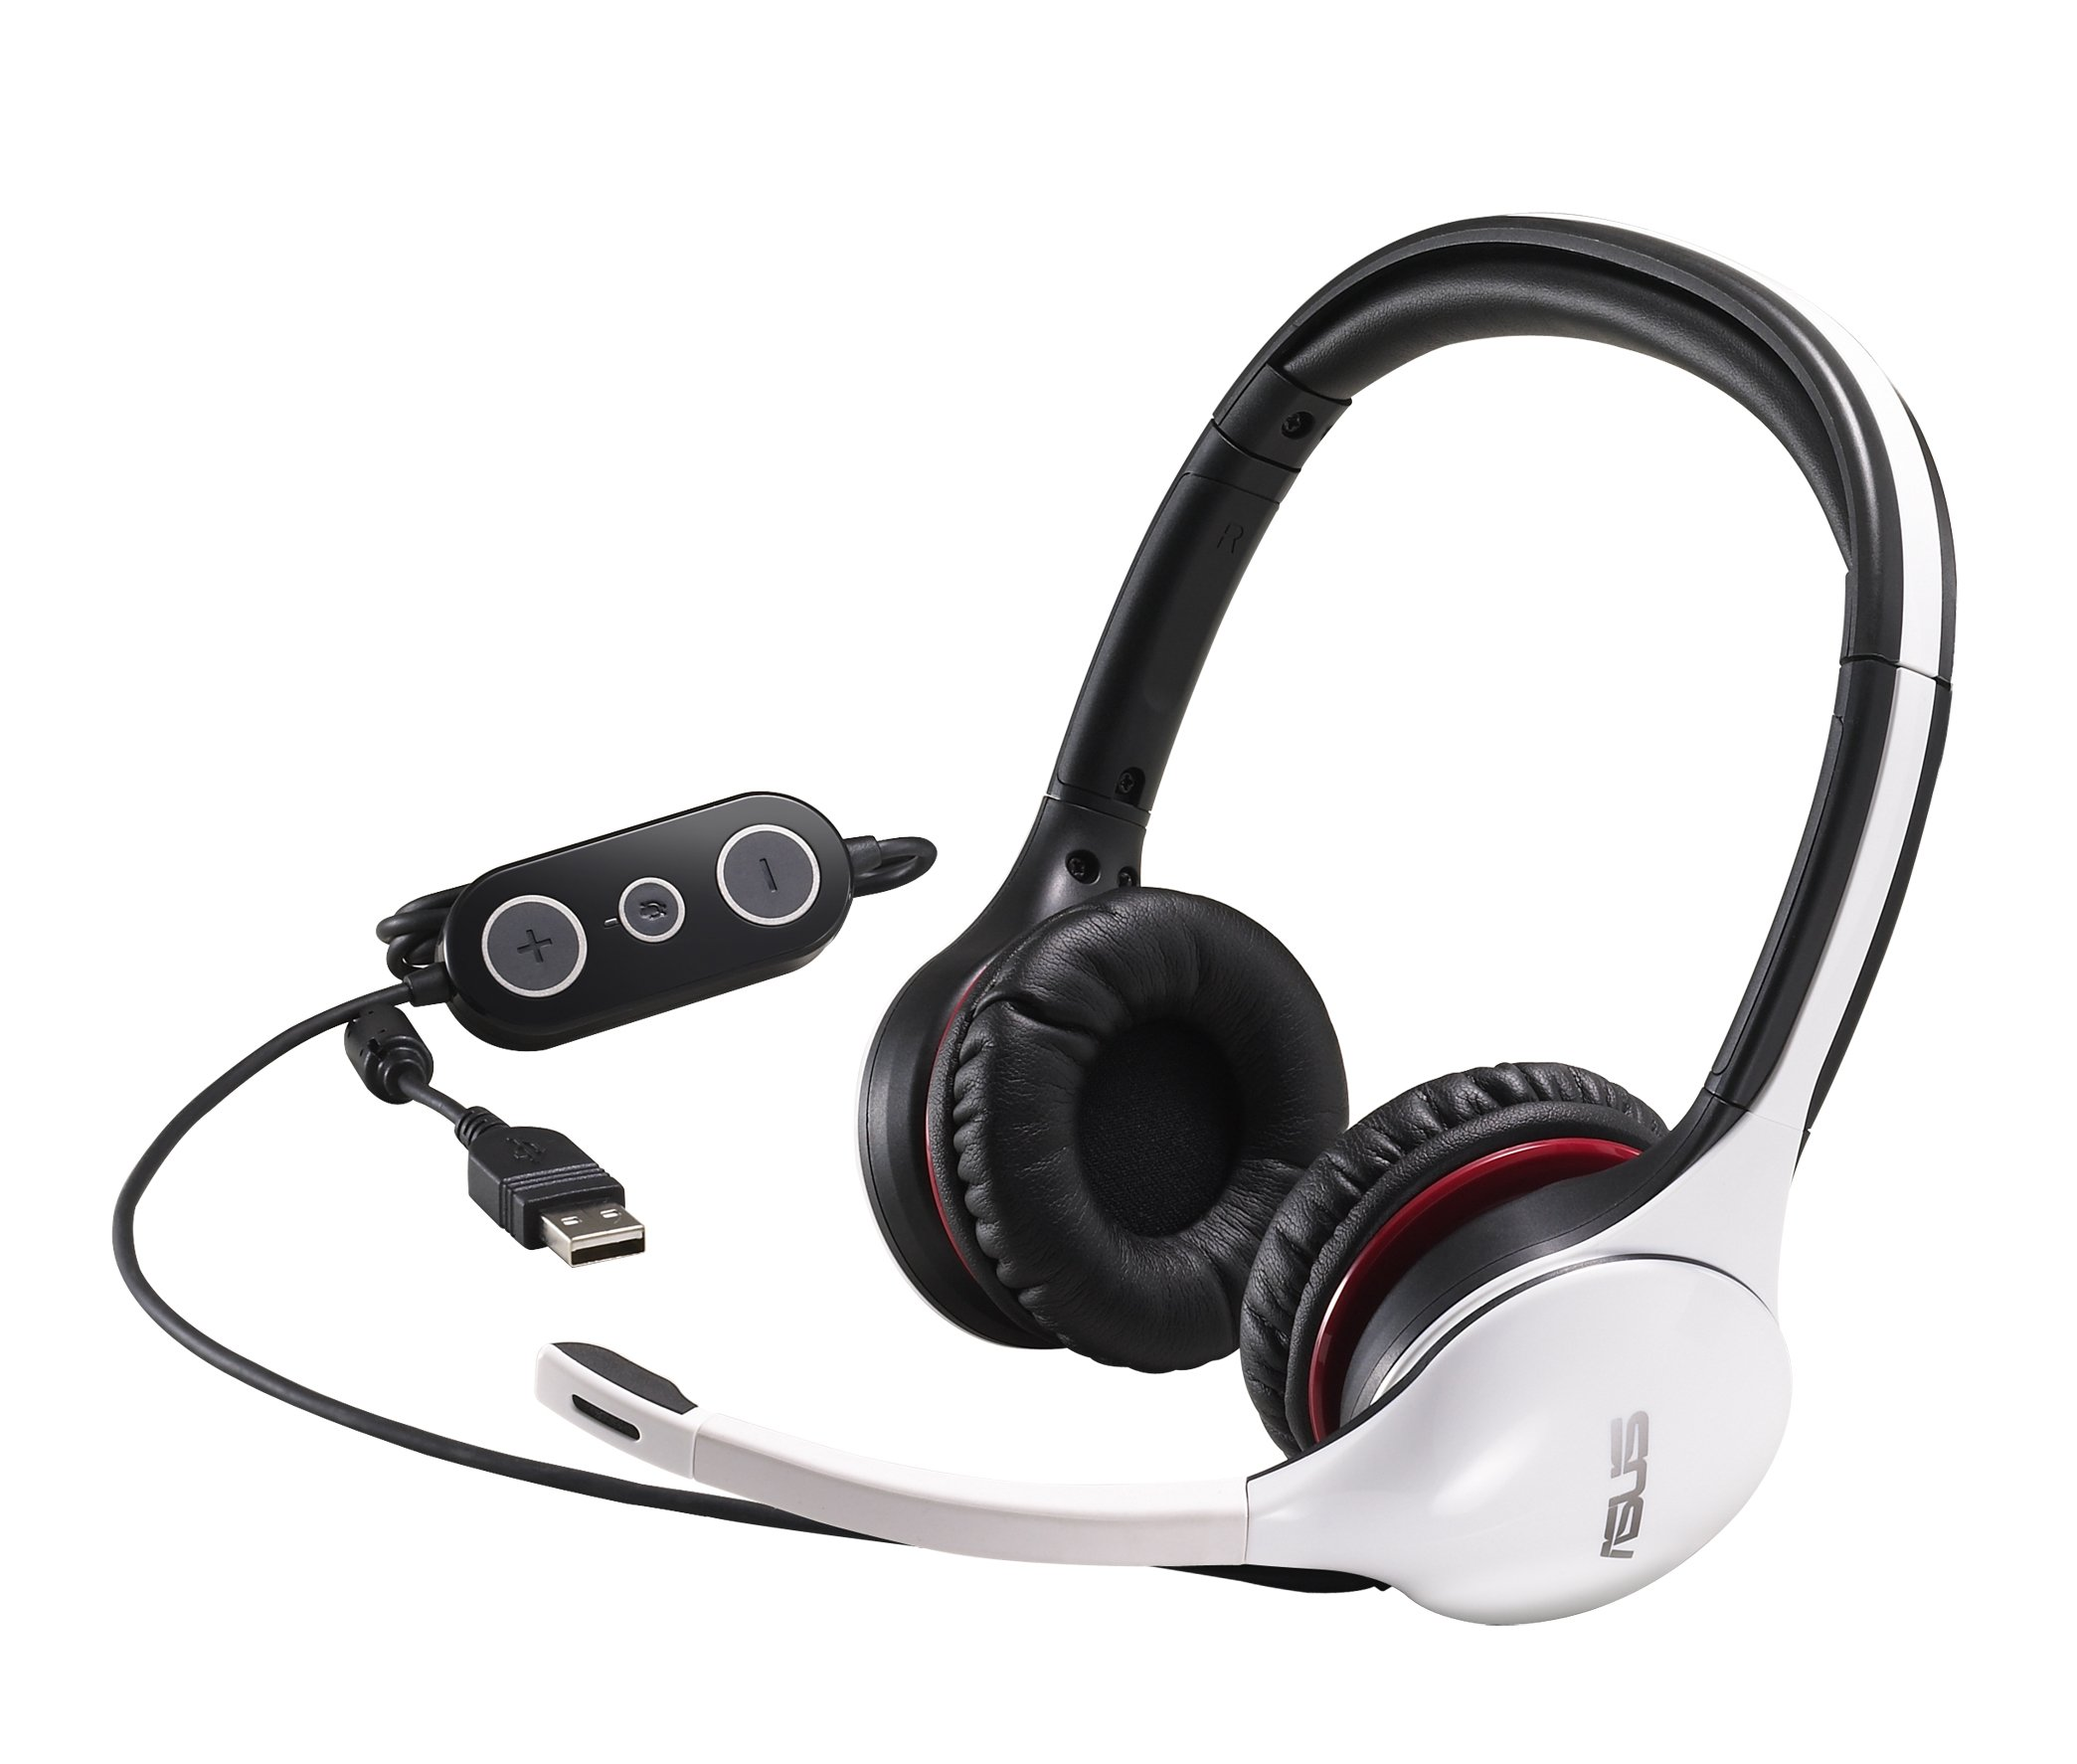 CineVibe Rumble-Feedback CINEVIBE/WHT/UBW/EU-VERSI USB Gaming Headset (White)